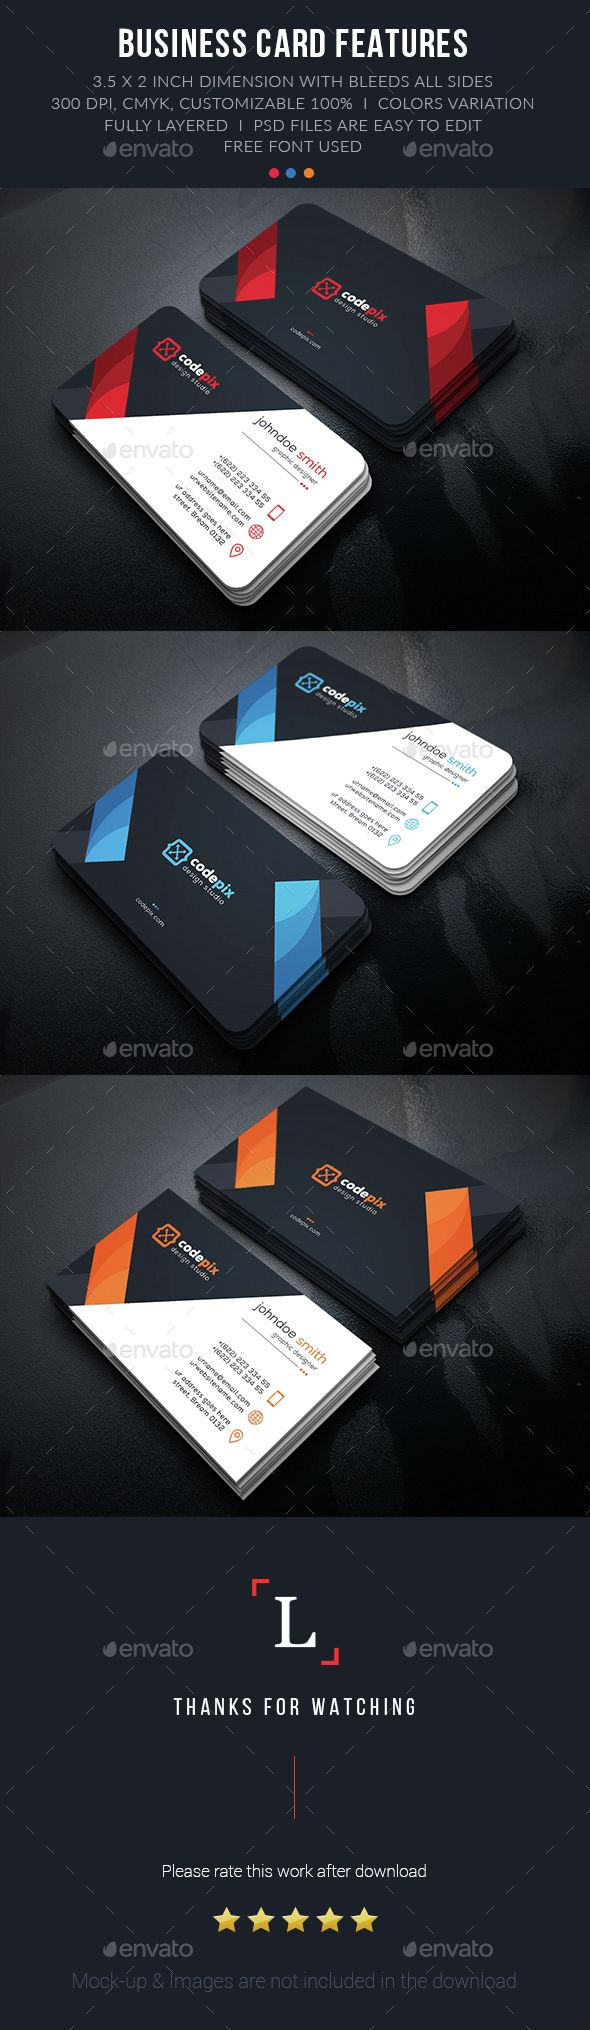 Design Creative Business Card Template PSD. Download here: http://graphicriver.net/item/design-creative-business-card/15208204?ref=ksioks